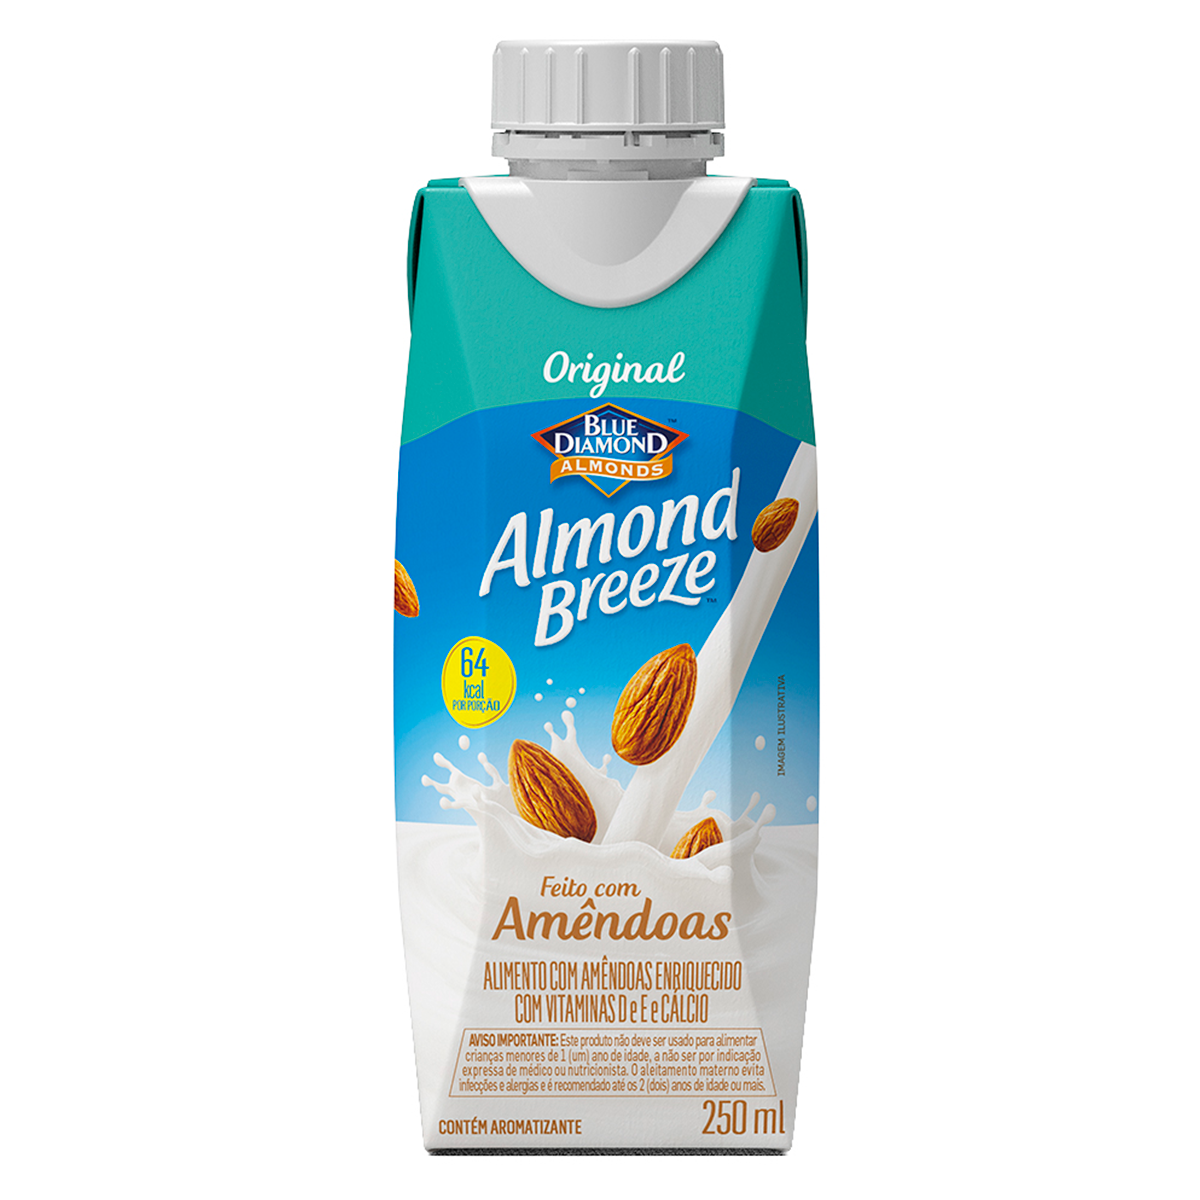 Bebida à Base de Amêndoa Original Blue Diamond Almond Breeze Caixa 250ml